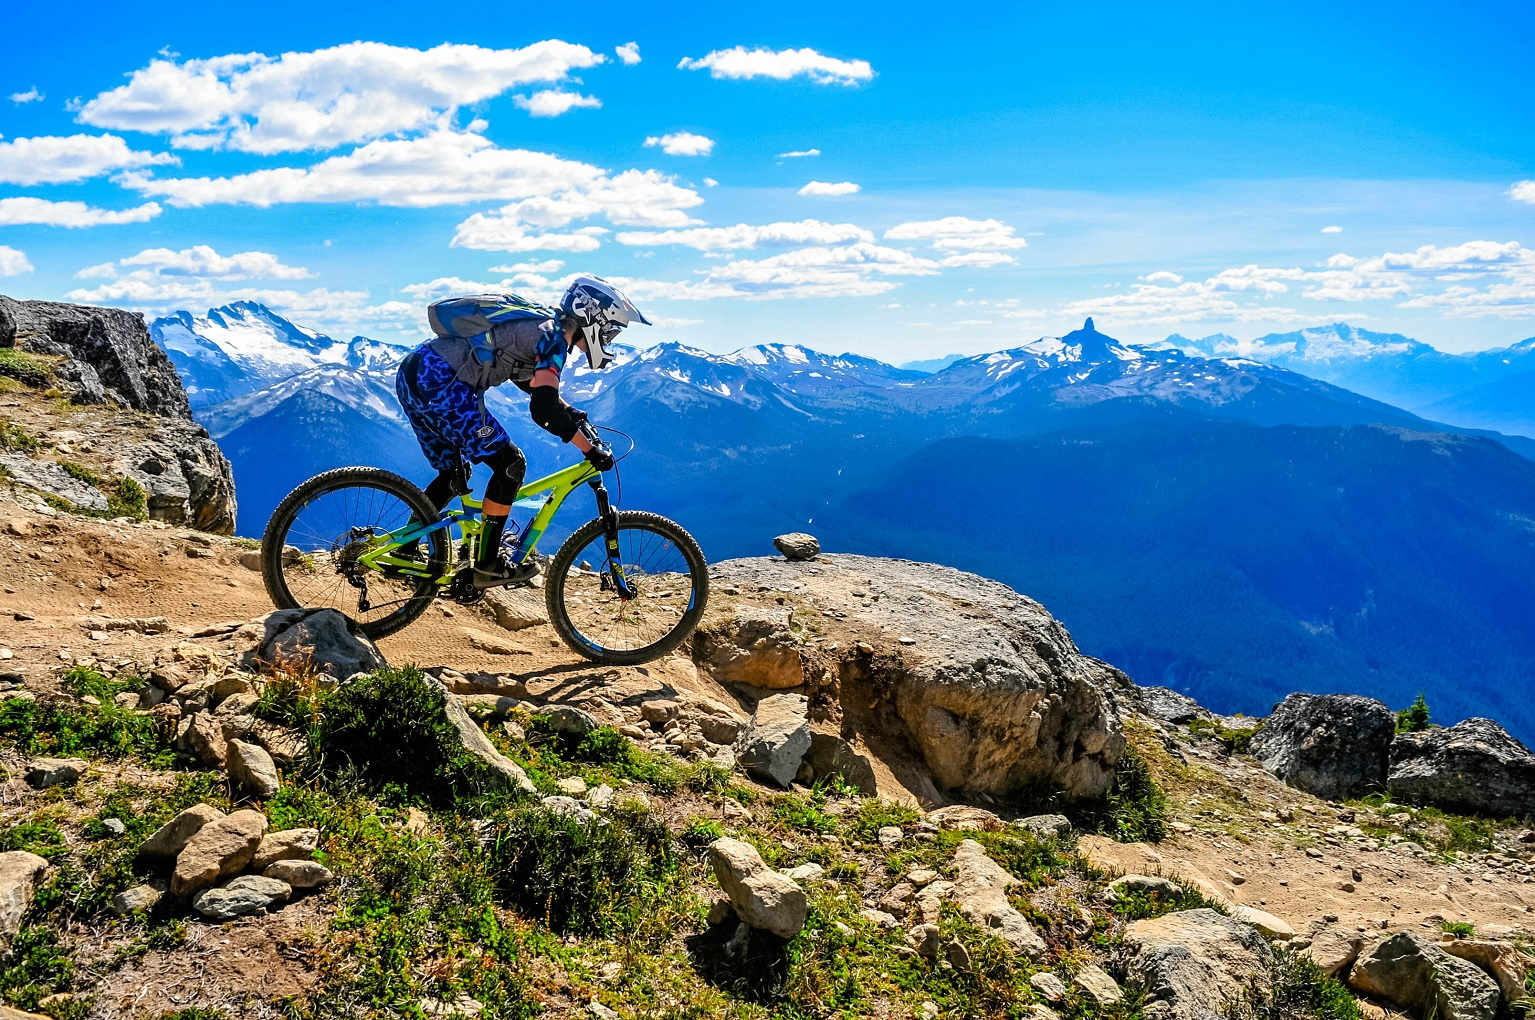 mountain biker in mountain biking gear on mountain bike in mountains blairmore hotels